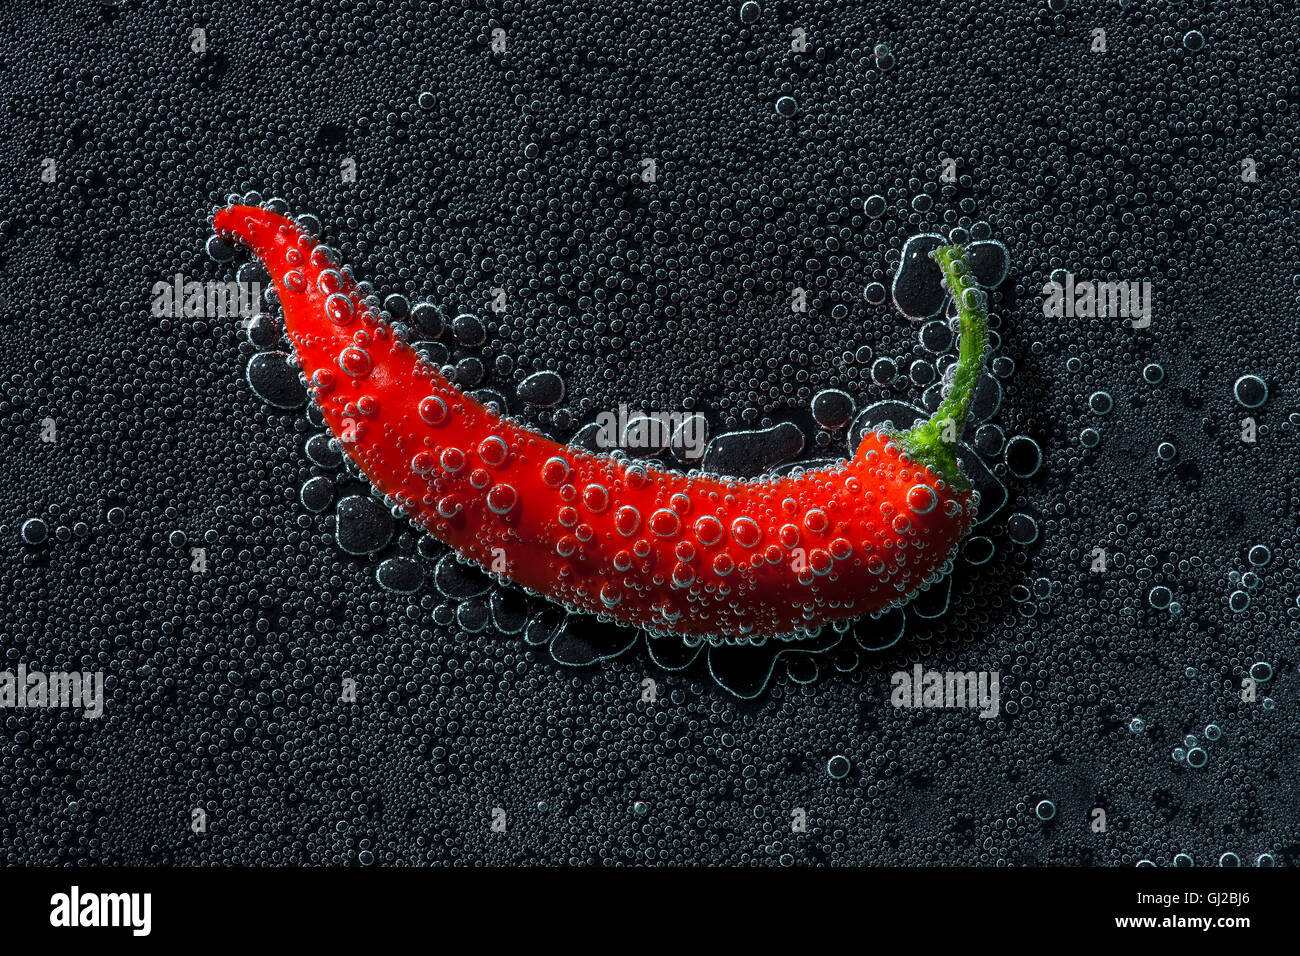 Chili pepper in a mineral water, a series of photos. Close-up carbonated water against black background - Stock Image